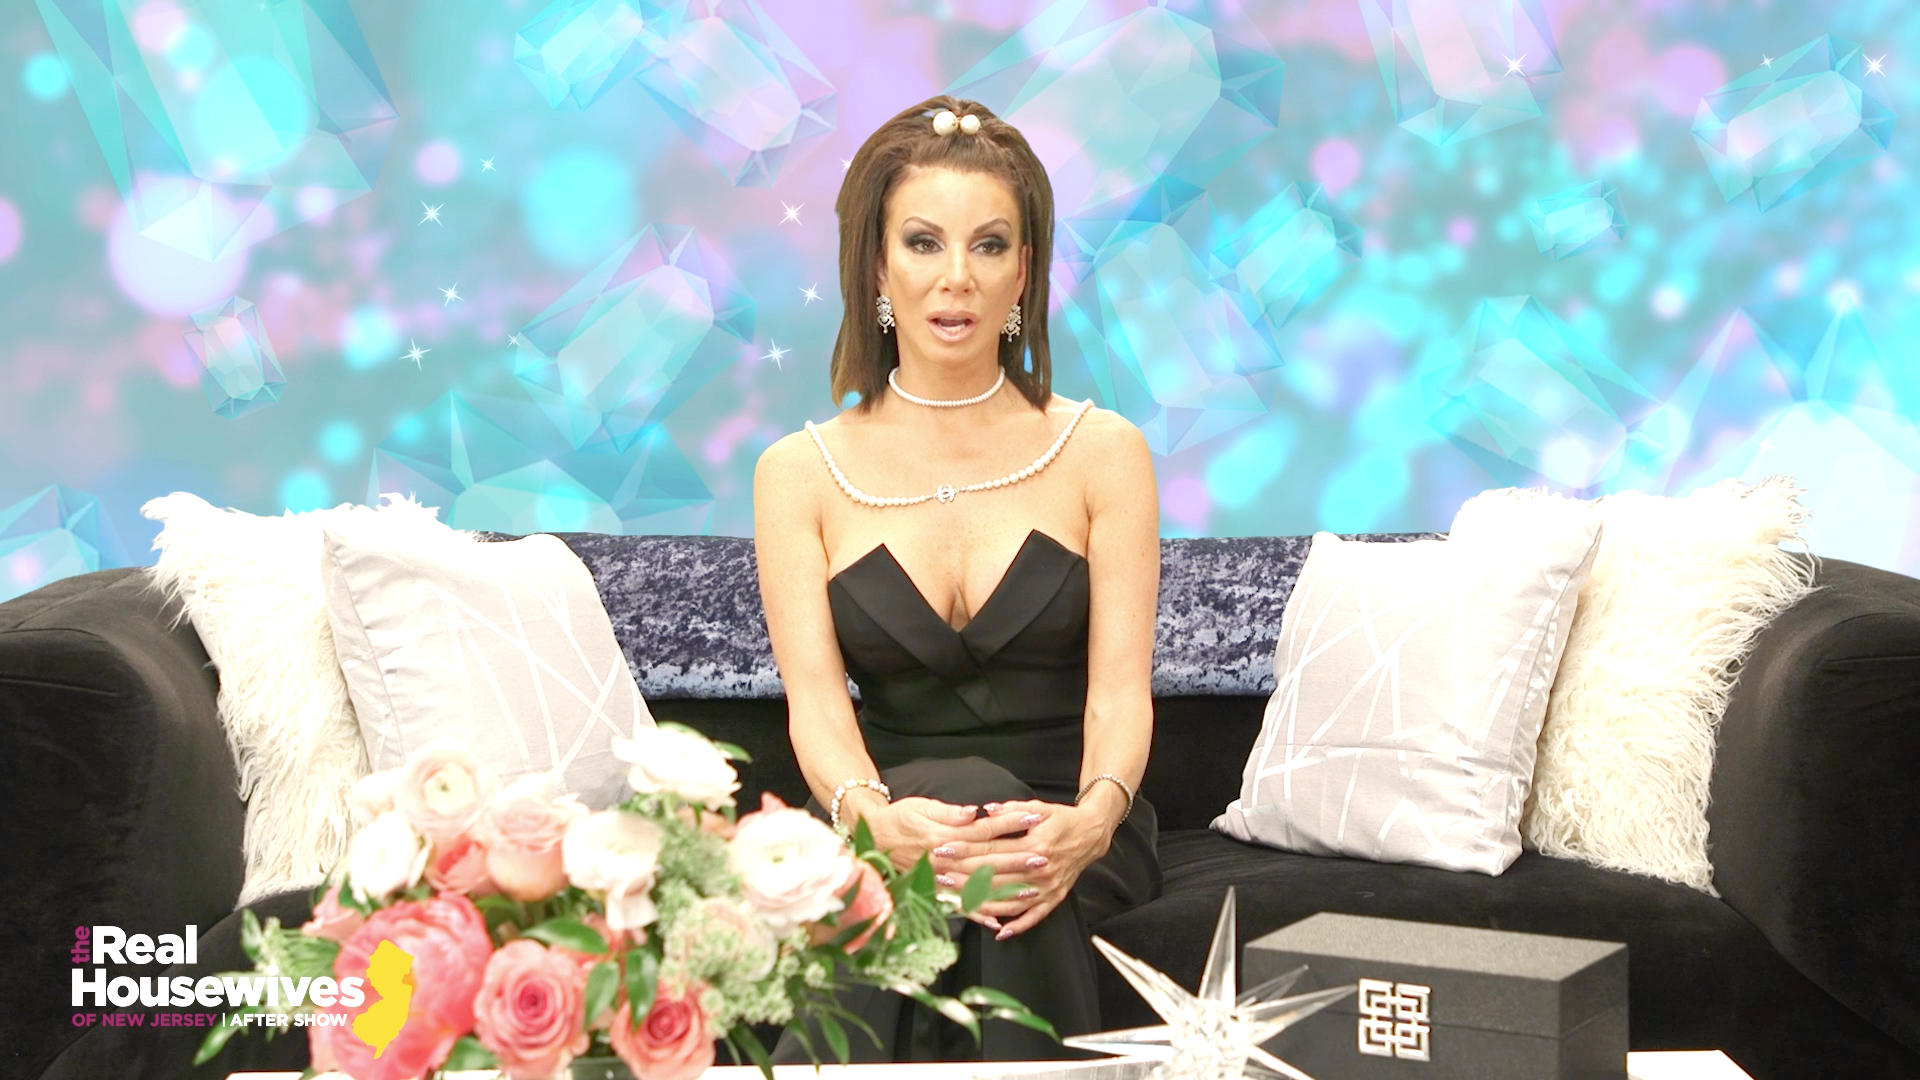 Danielle Staub Removed Margaret Josephs From All of Her Bridal Photos